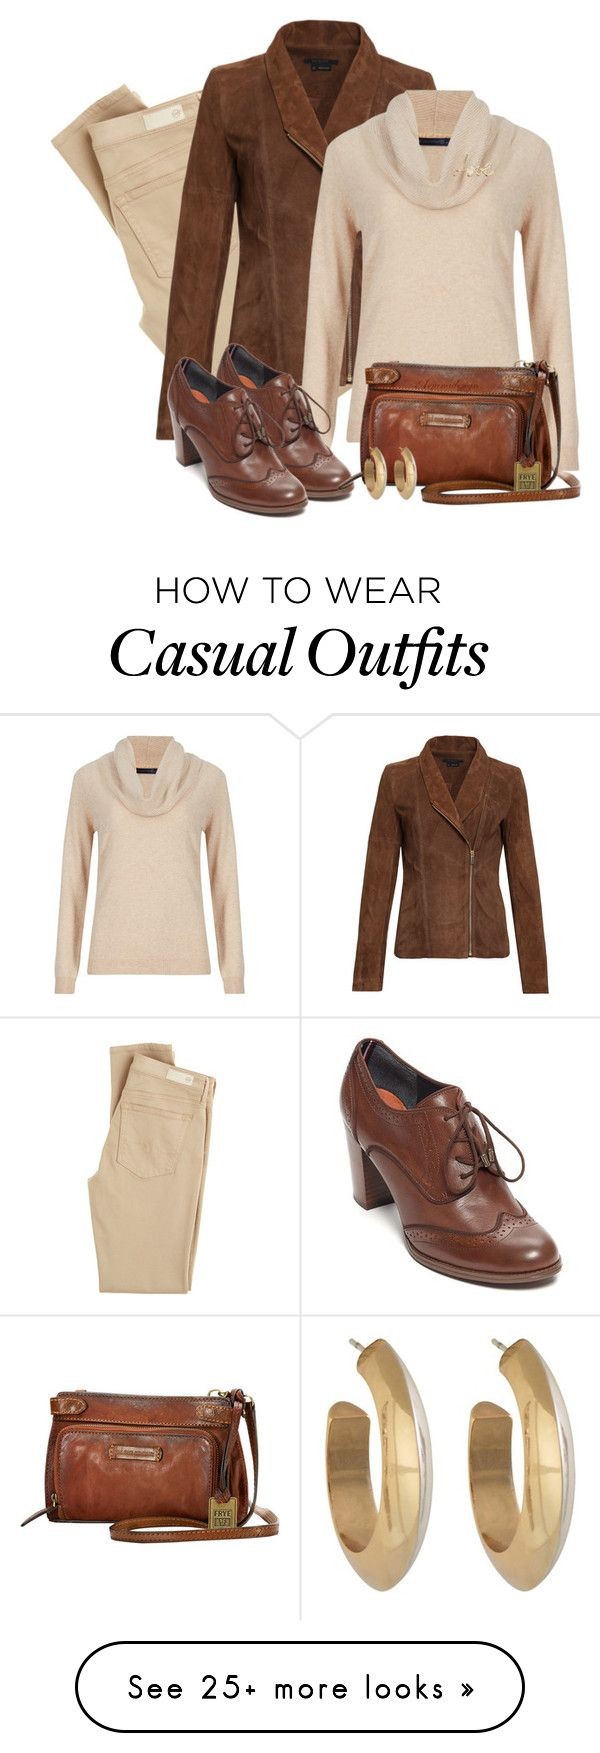 """""""CASUAL FRIDAY"""" by arjanadesign on Polyvore featuring AG Adriano Goldschmied, M&S Collection, Tommy Hilfiger, Frye, Lanvin and House of Harlow 1960"""